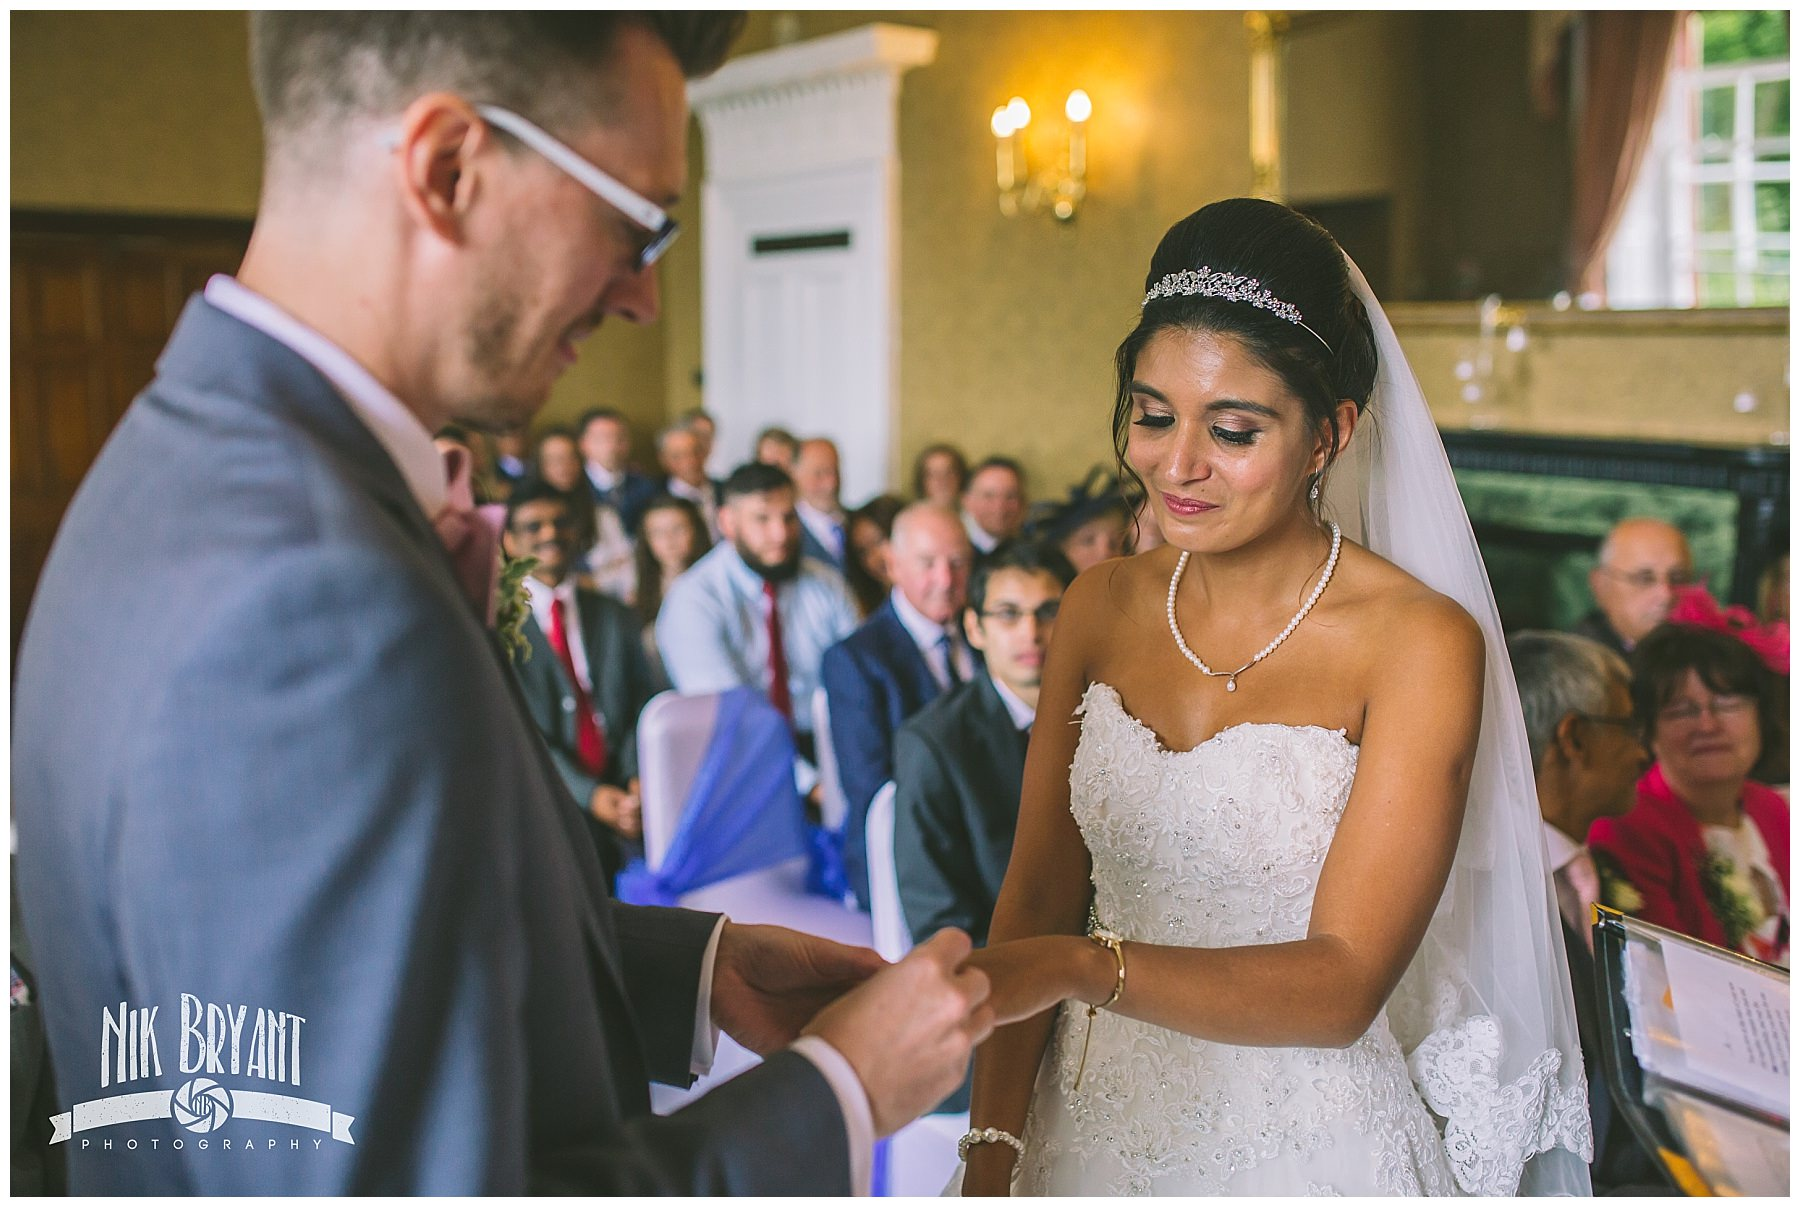 Bride and groom exchange rings during wedding ceremony